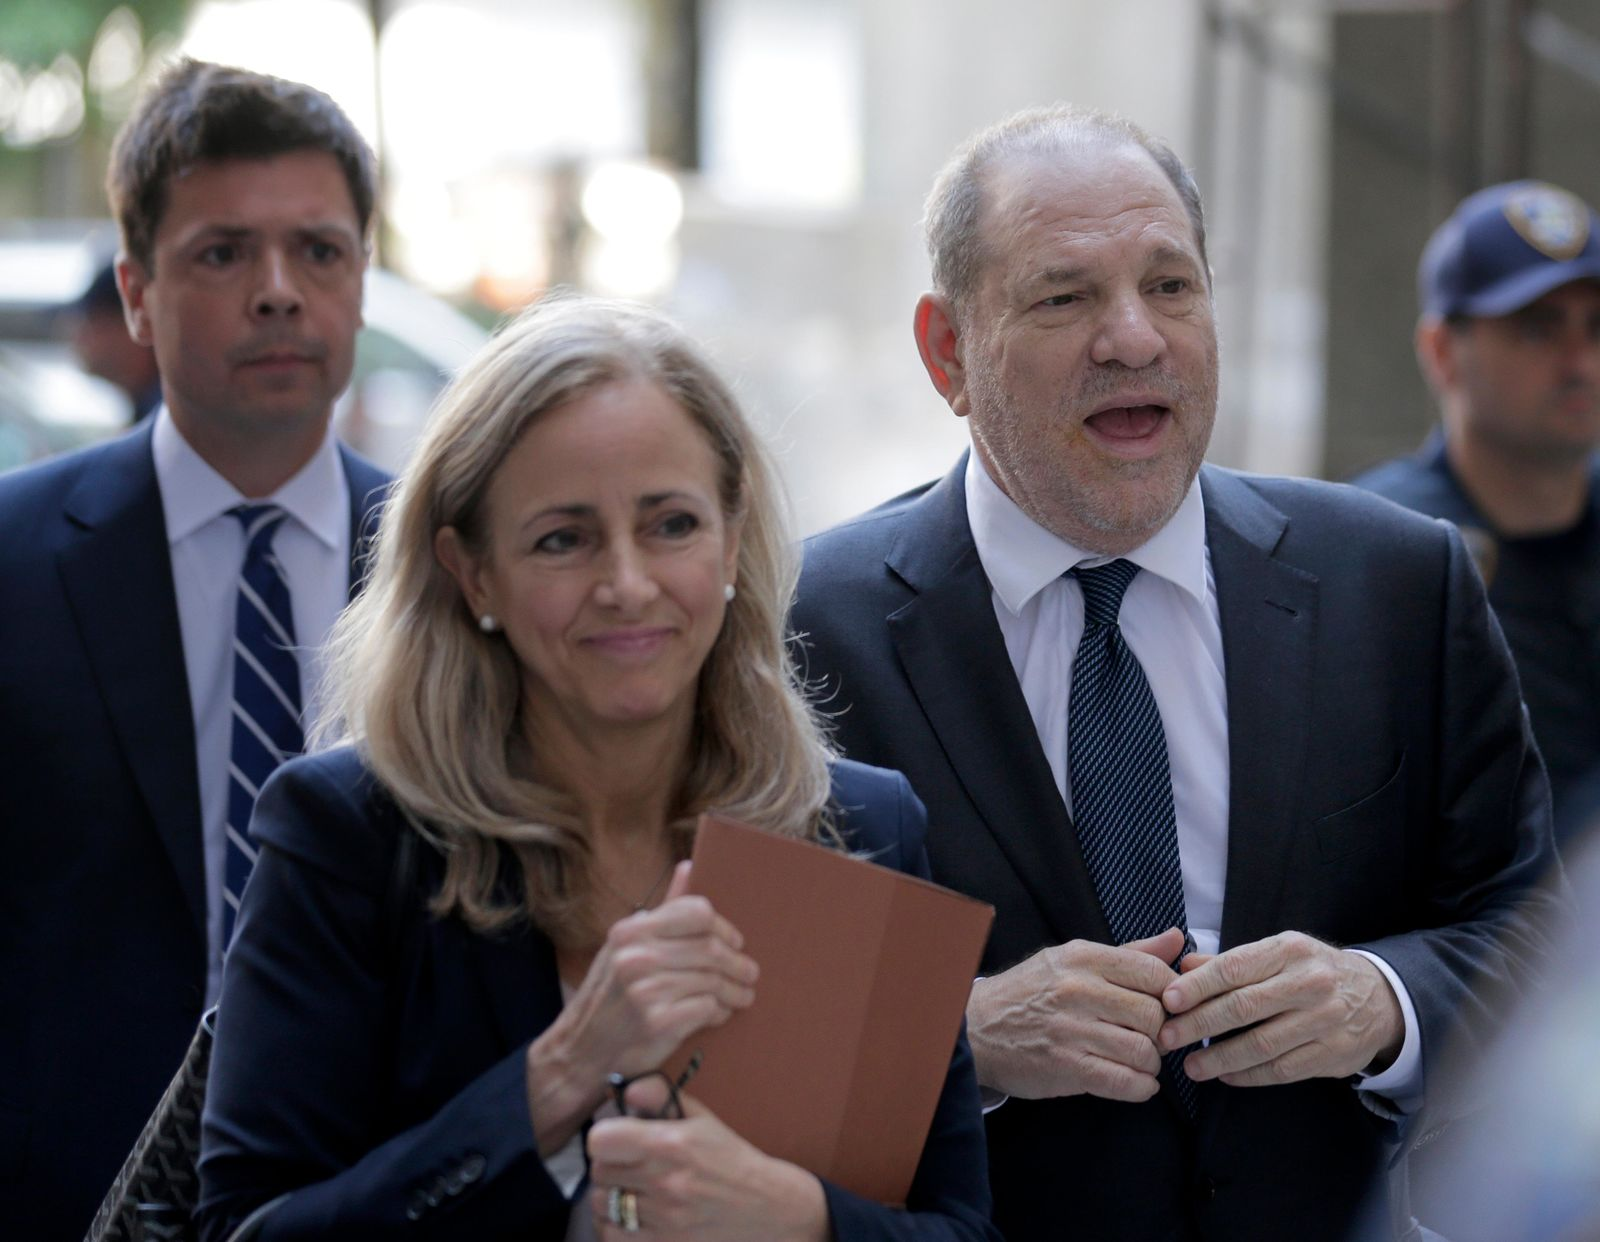 Harvey Weinstein, right, arrives at court for a hearing in his sexual assault case, Thursday, July 11, 2019,  in New York. (AP Photo/Seth Wenig)